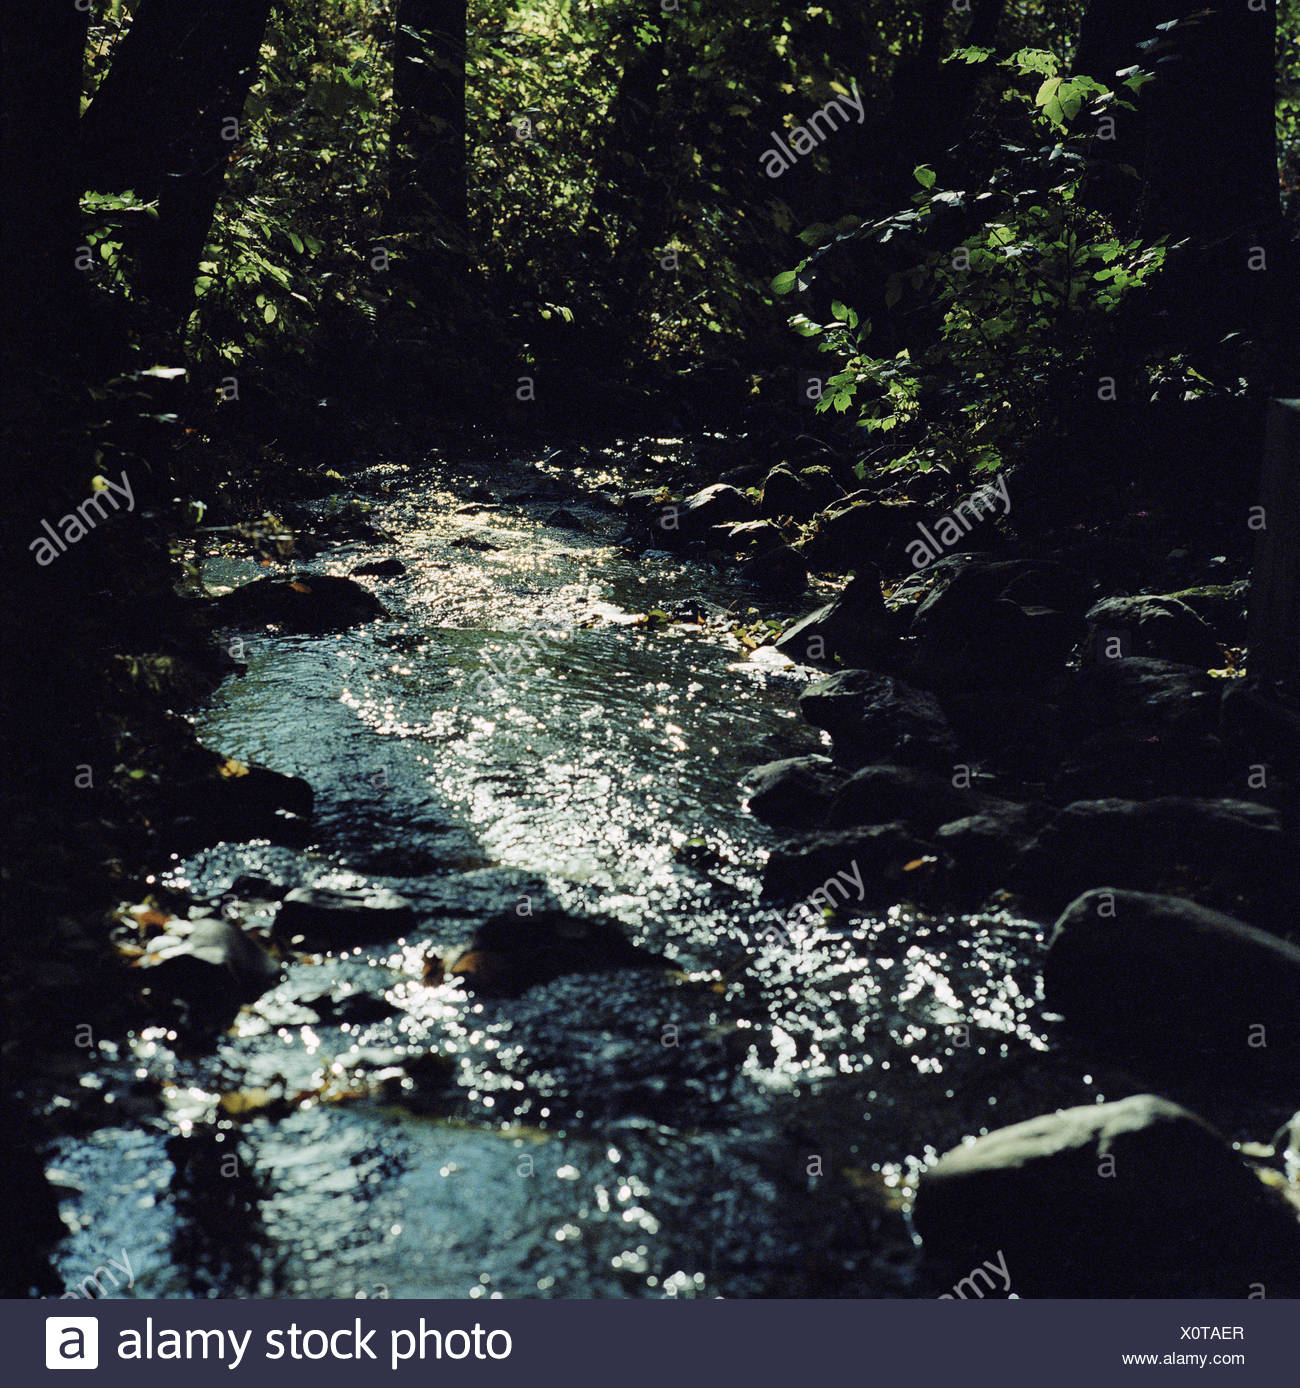 Small stream flowing through forest. Stock Photo